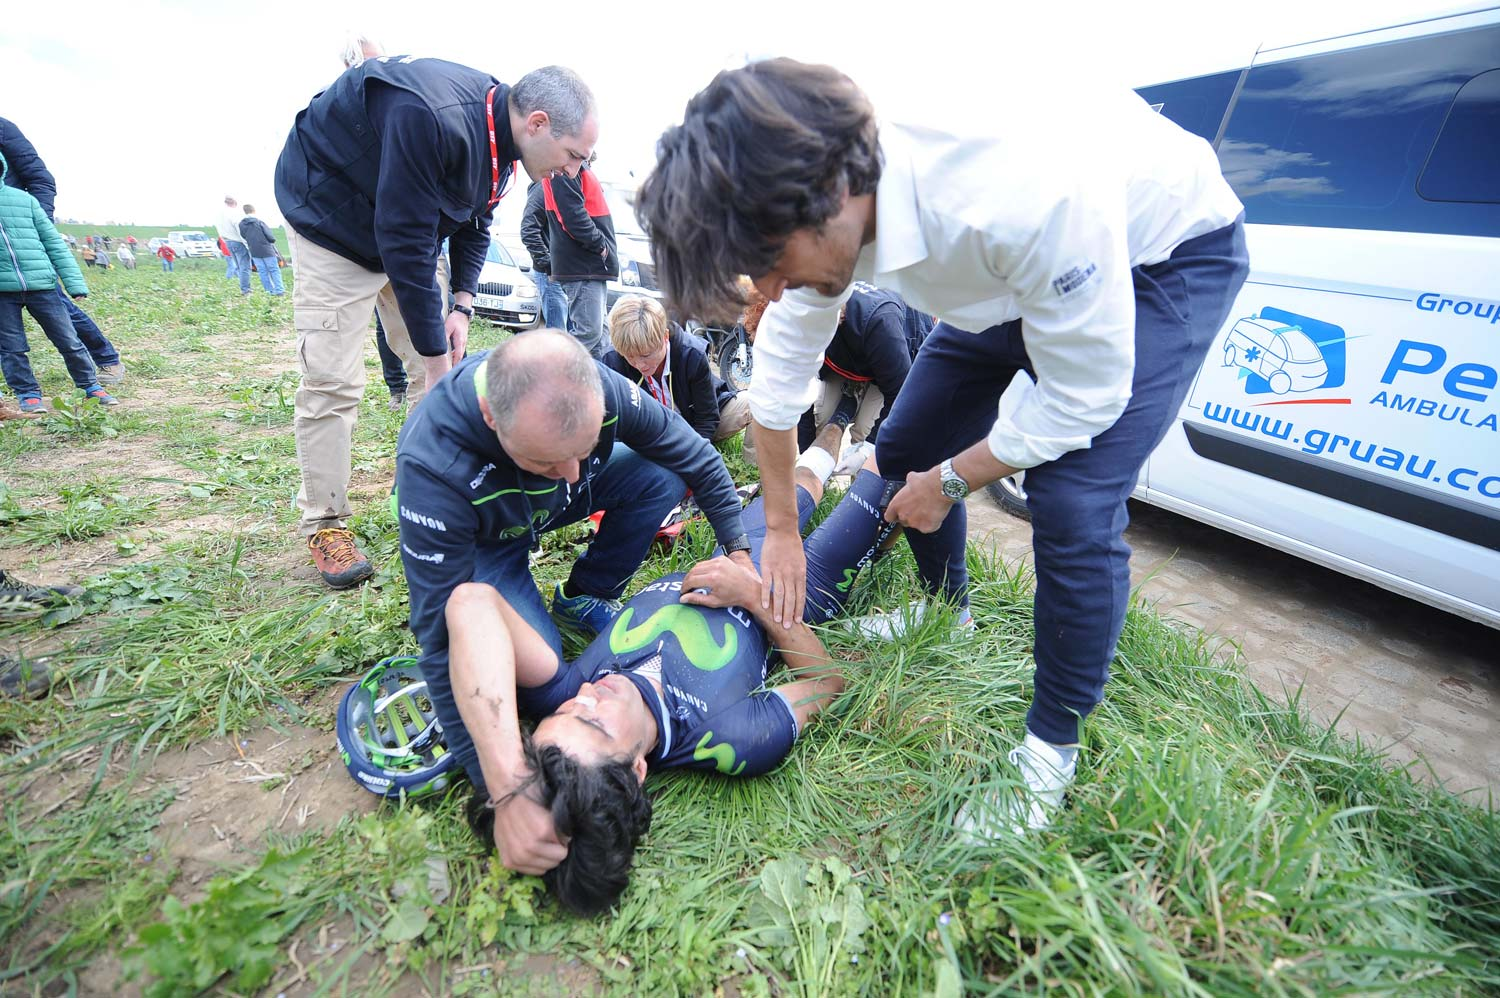 Francisco Ventoso has his wounds tended to by the race doctor. Photo: Yuzuru Sunada